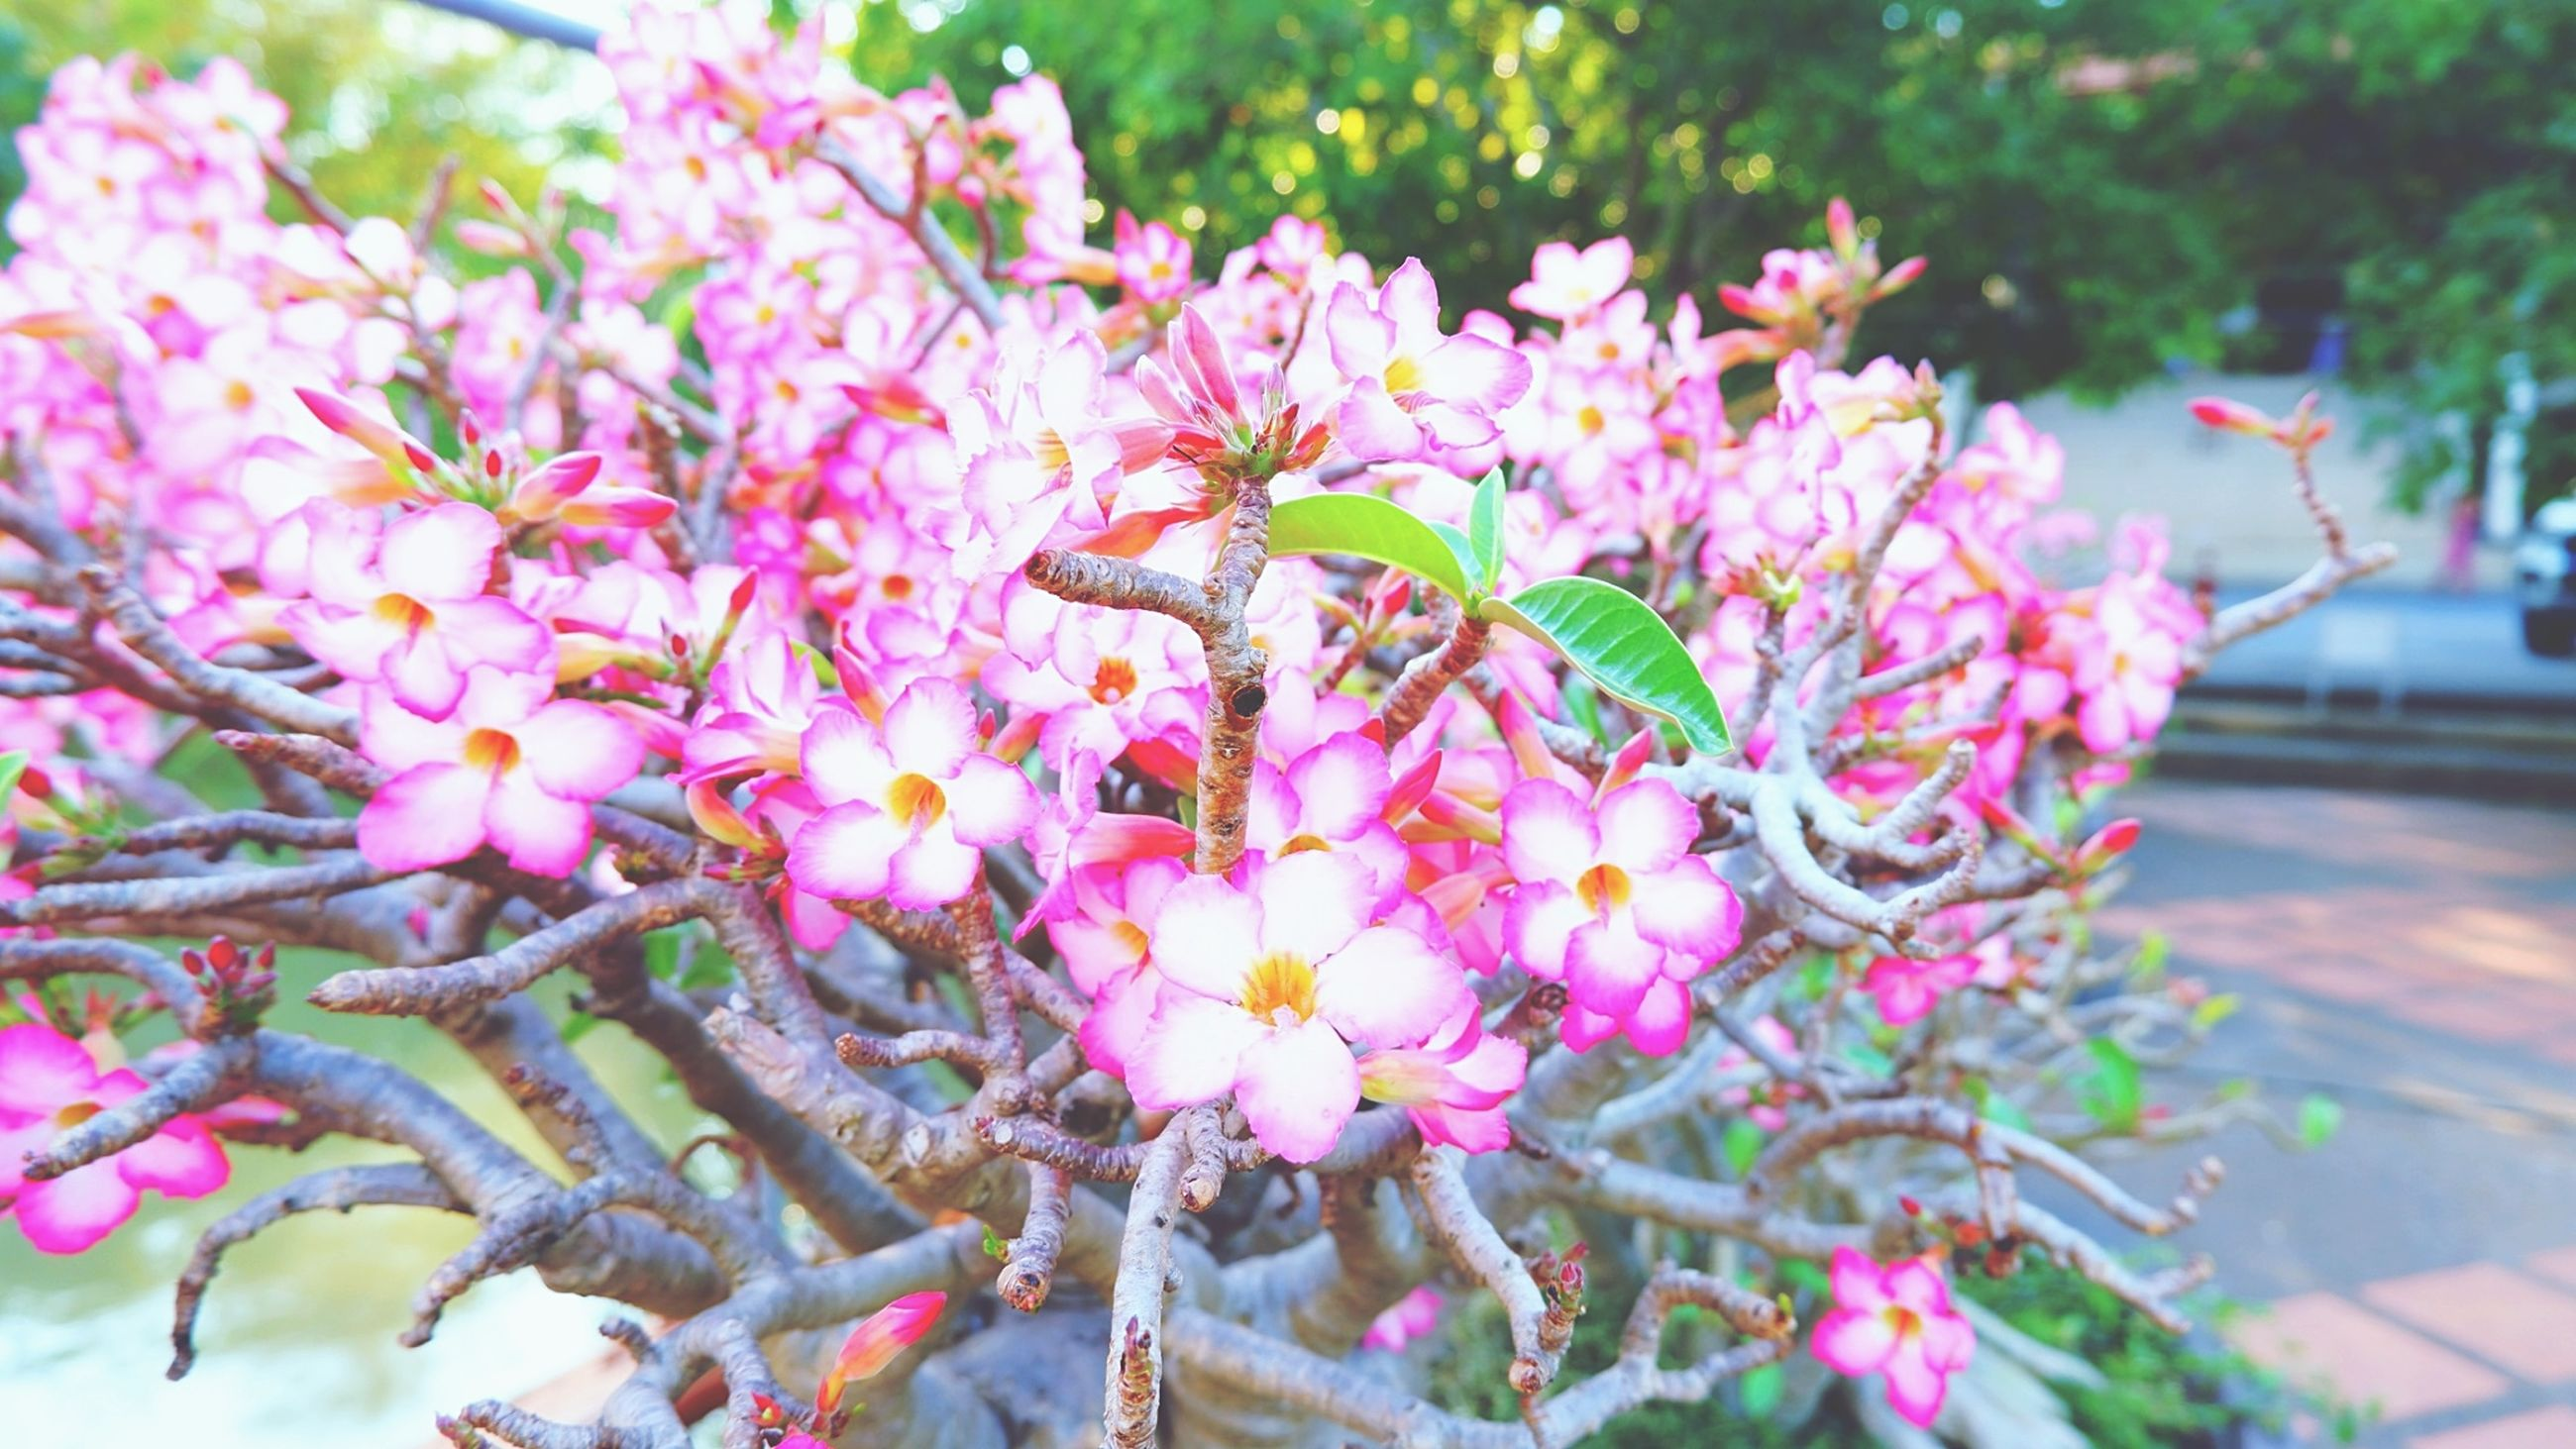 plant, flower, flowering plant, pink, beauty in nature, freshness, blossom, fragility, growth, nature, tree, close-up, no people, day, springtime, focus on foreground, branch, shrub, spring, outdoors, petal, flower head, inflorescence, botany, selective focus